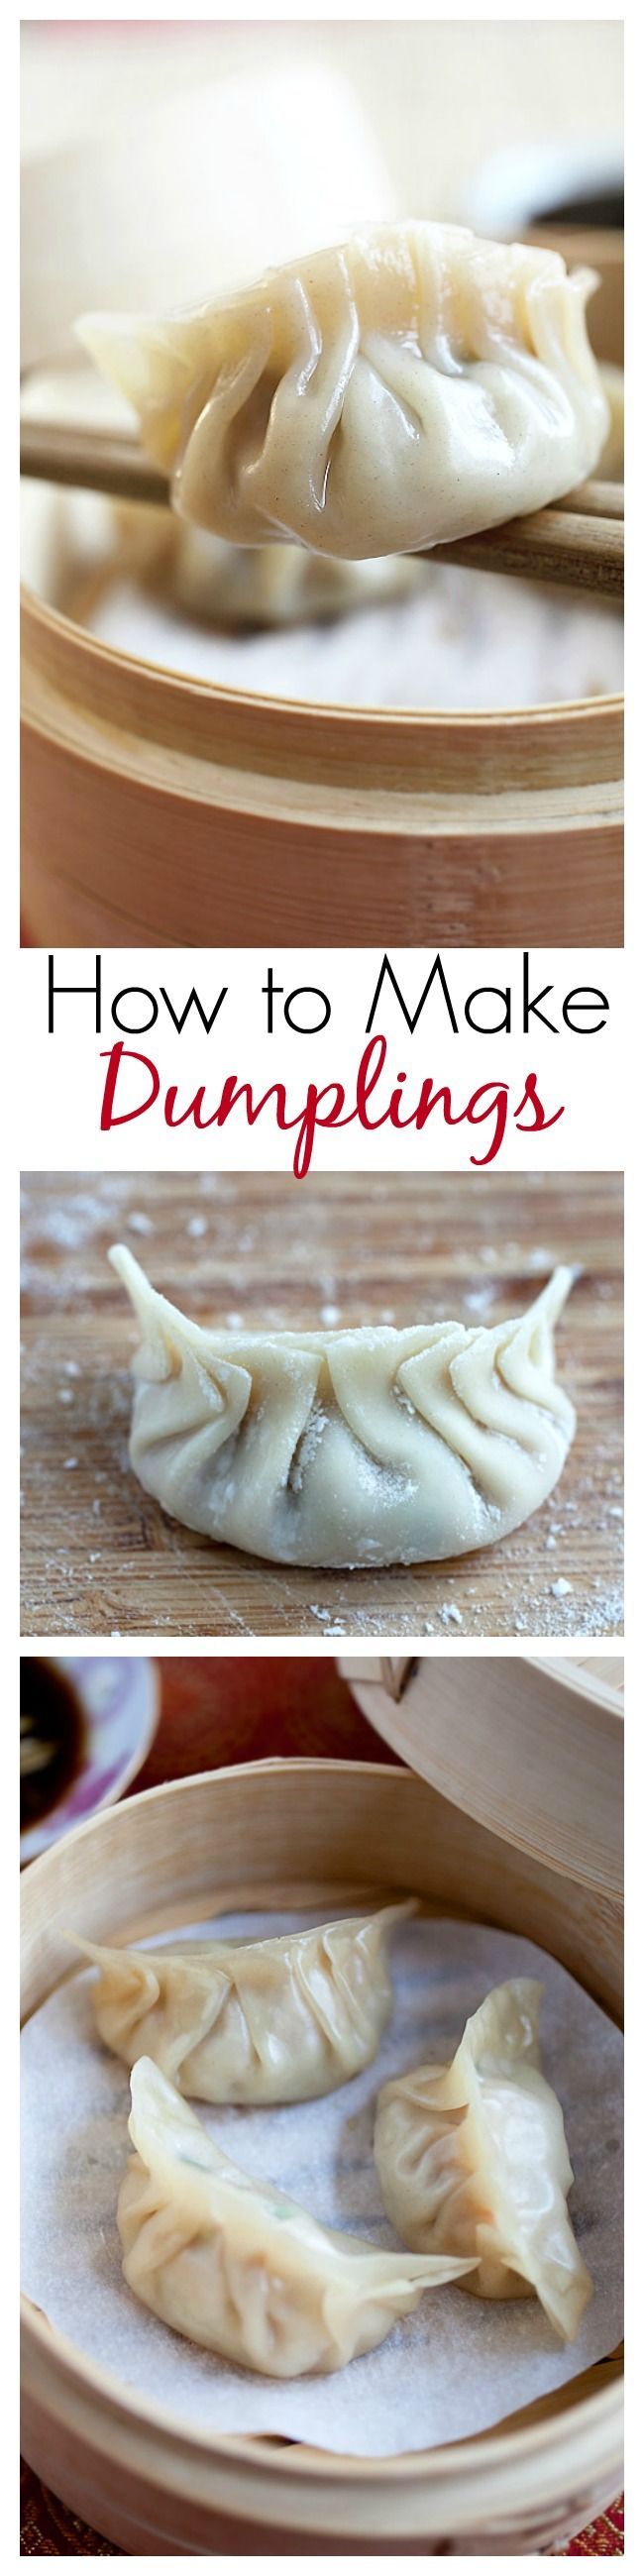 {China} How to make dumplings - learn the easy steps to make healthy and delicious dumplings | rasamalaysia.com